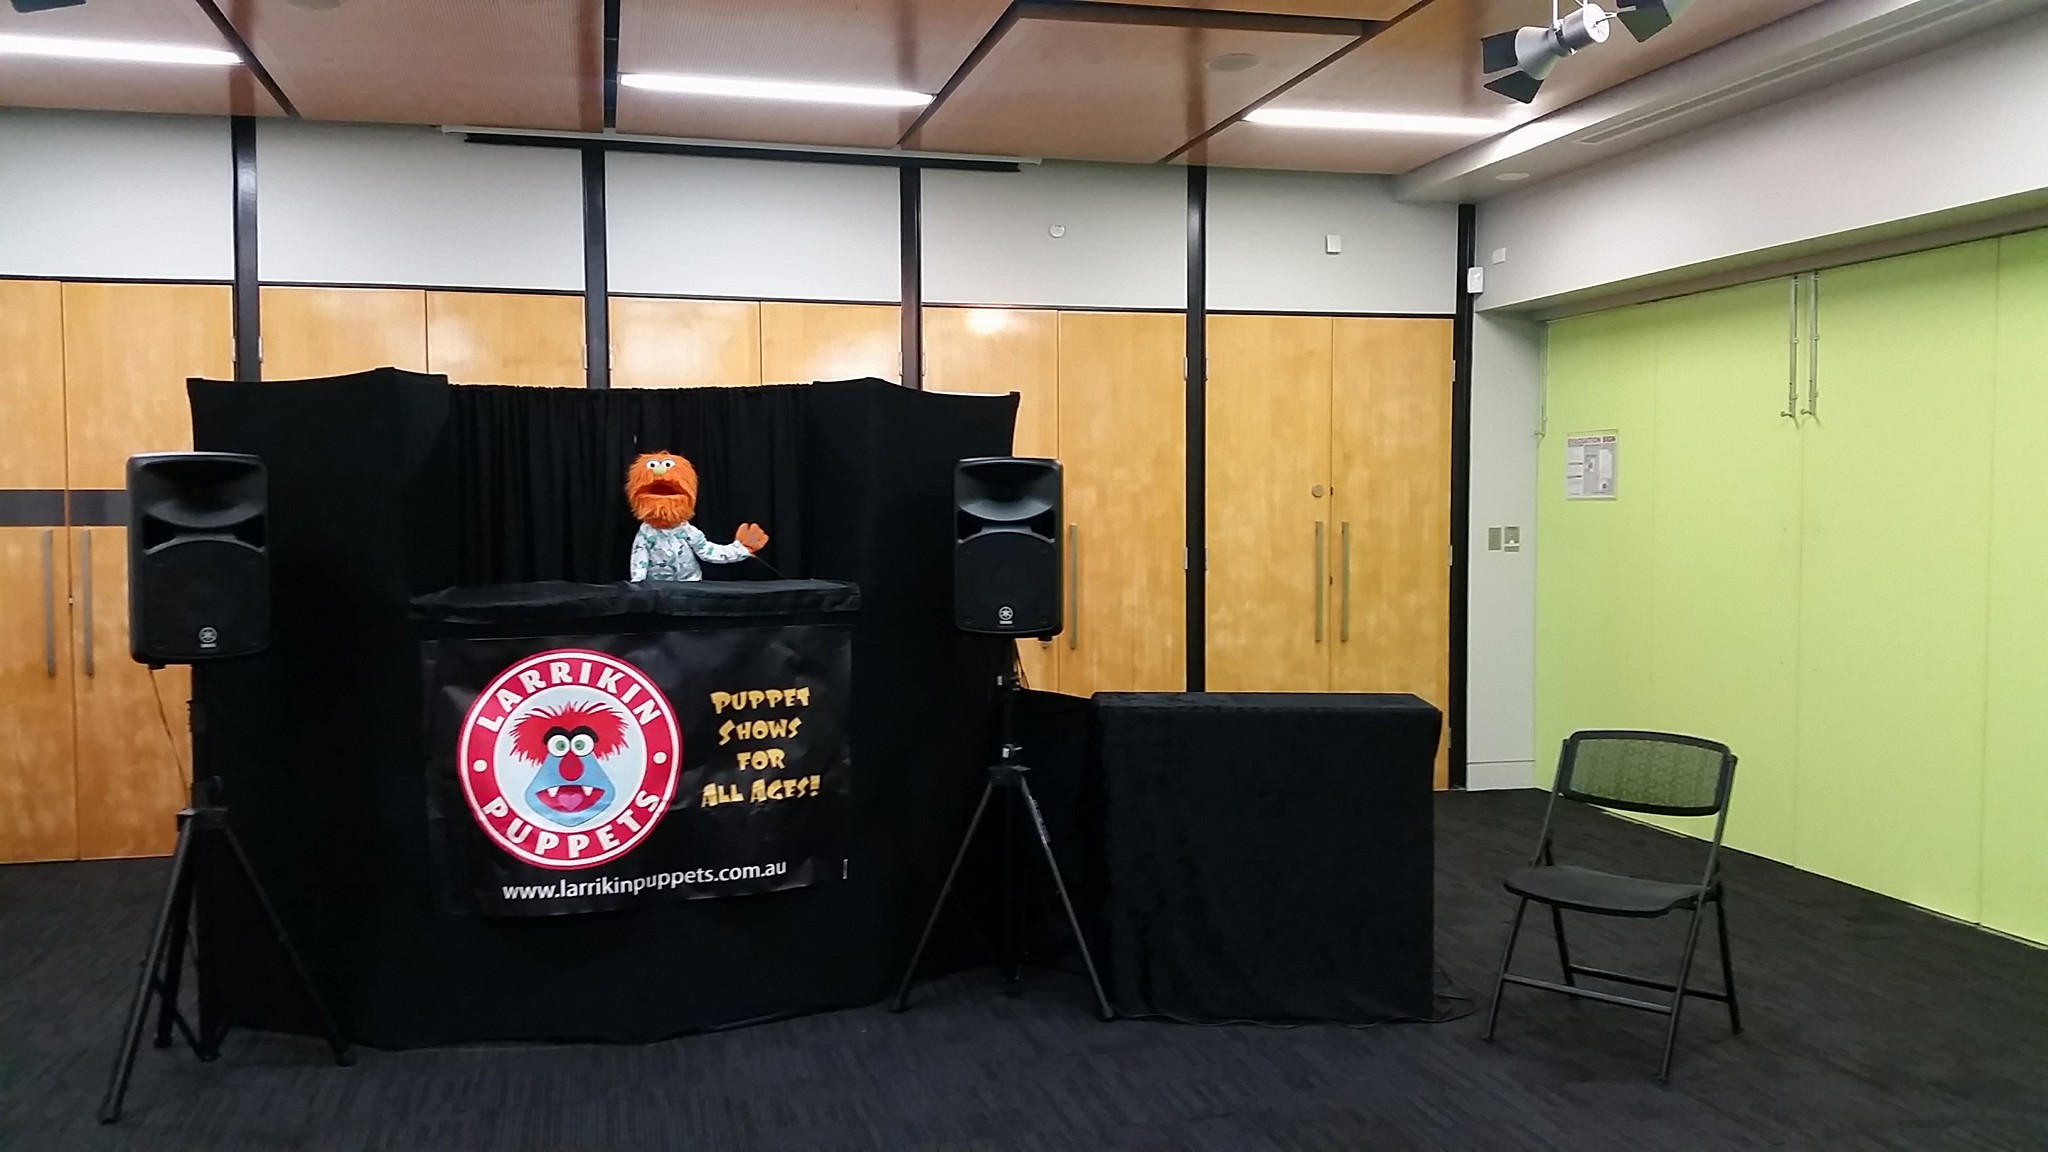 Children's Entertainment, Children's Entertainers, Party Entertainment For Hire | Puppet Show, Puppetry Workshops - Library Story Time, First 5 Forever, Rockhampton Regional Library